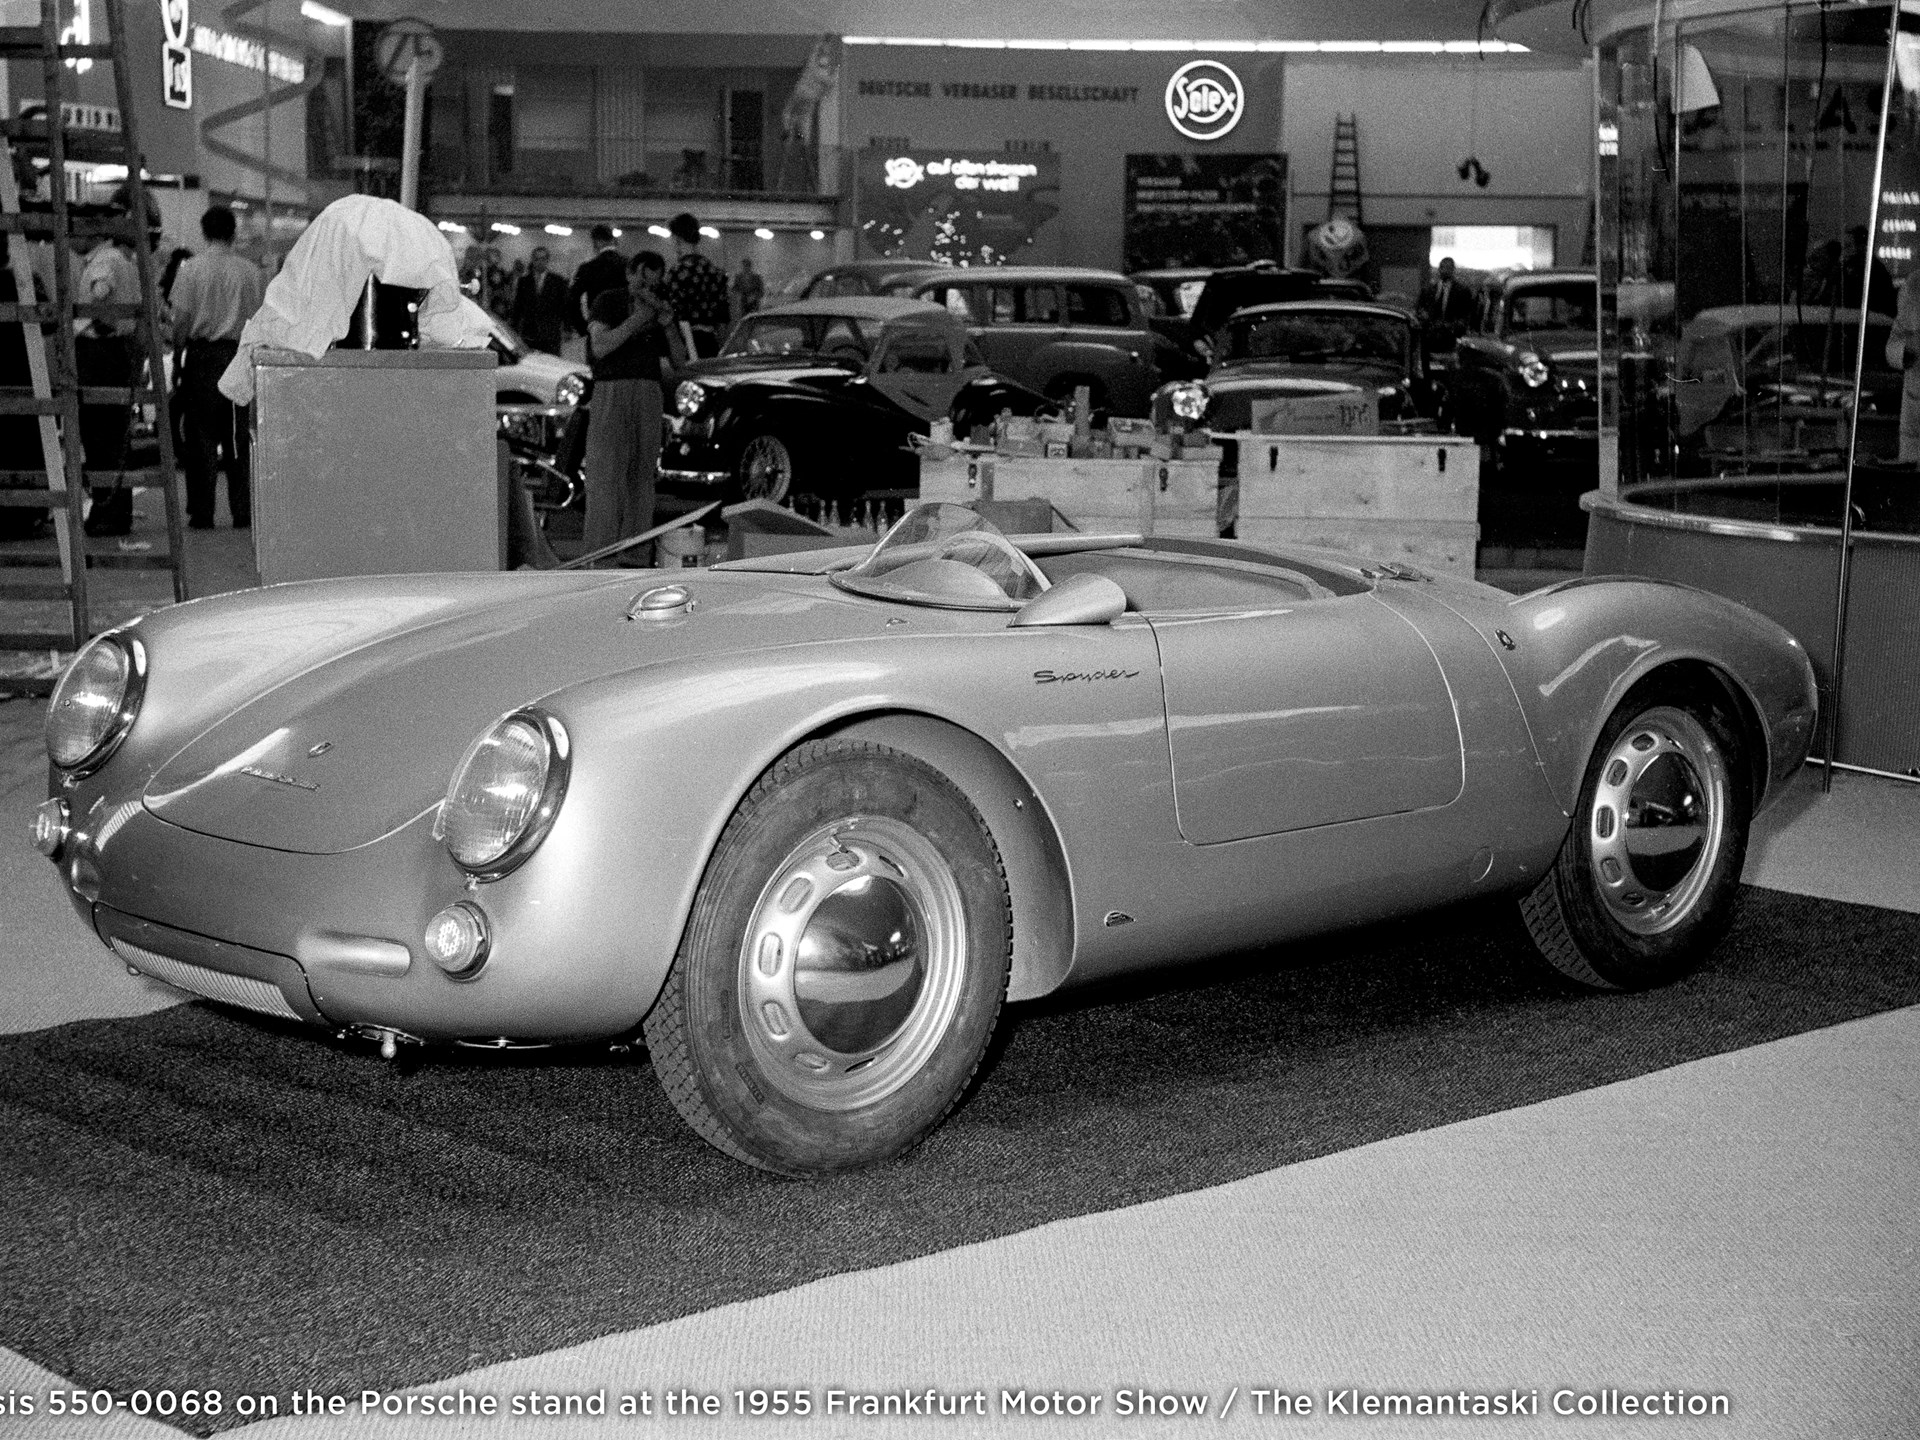 Chassis 550-0068 on the Porsche stand at the 1955 Frankfurt Motor Show.